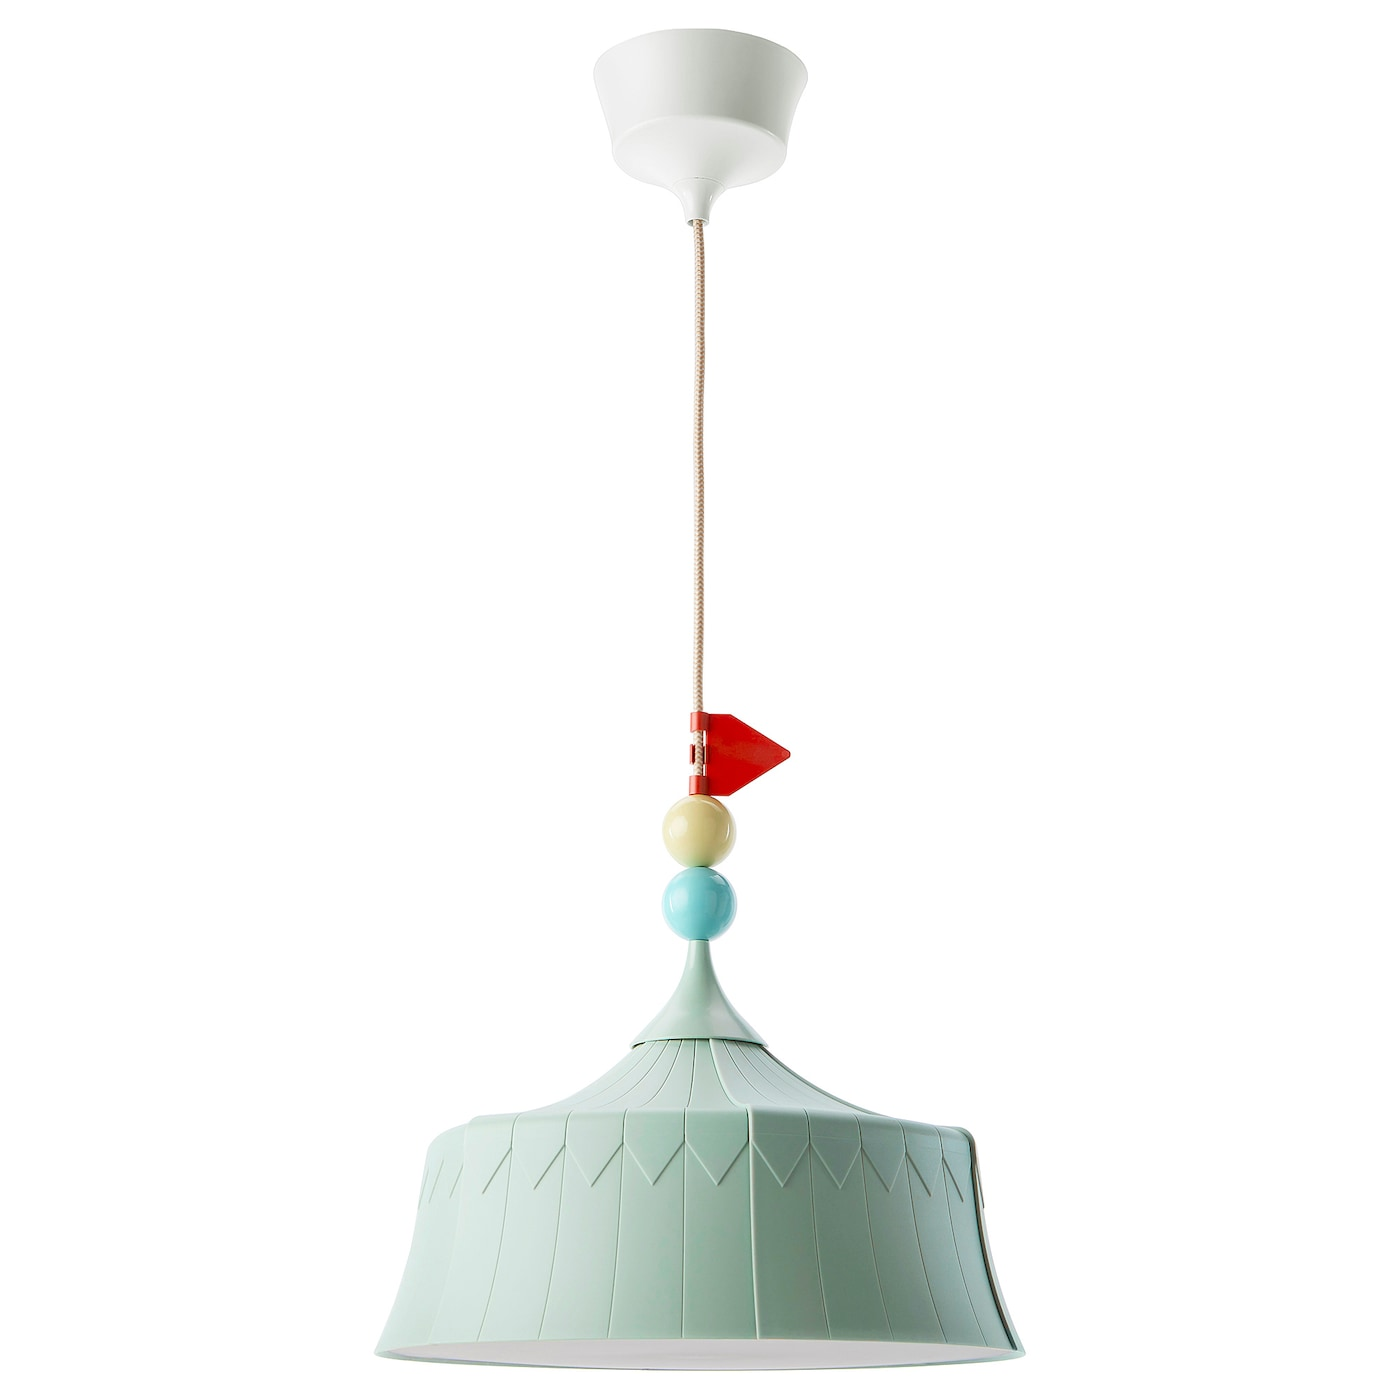 IKEA TROLLBO pendant lamp Gives a good general light. Tested and approved for children.